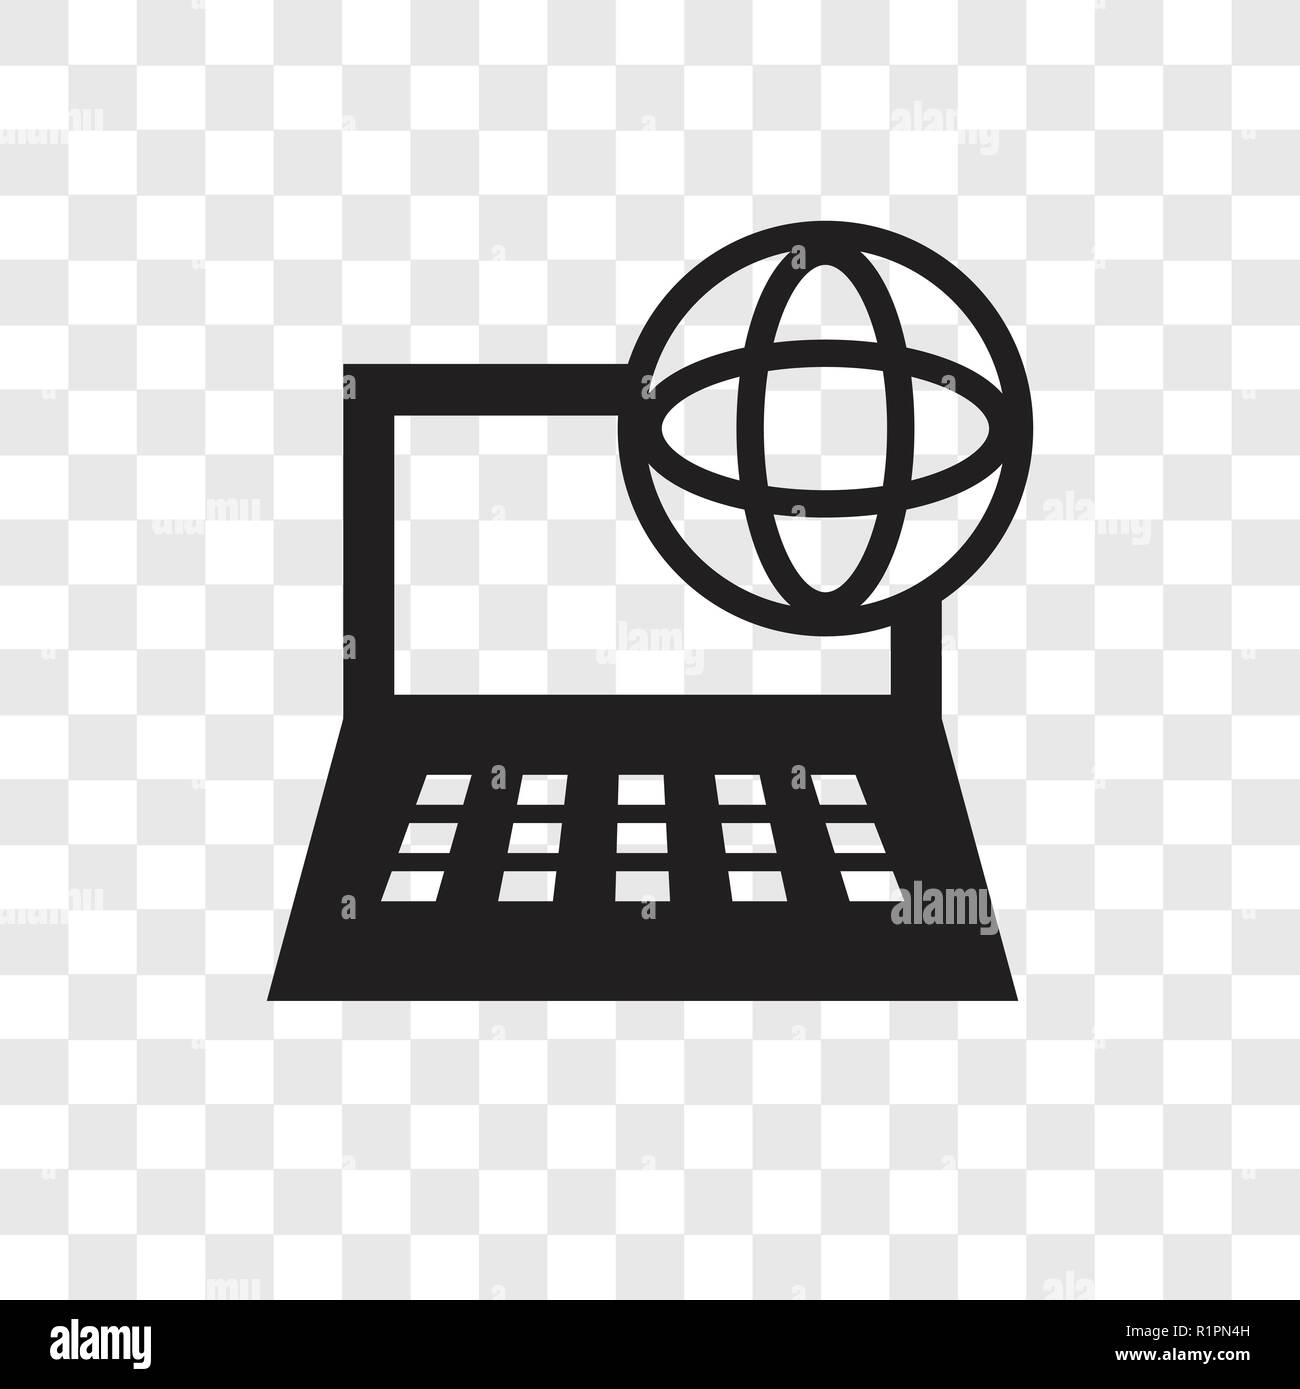 Computer and network vector icon isolated on transparent ...Computer Network Logo